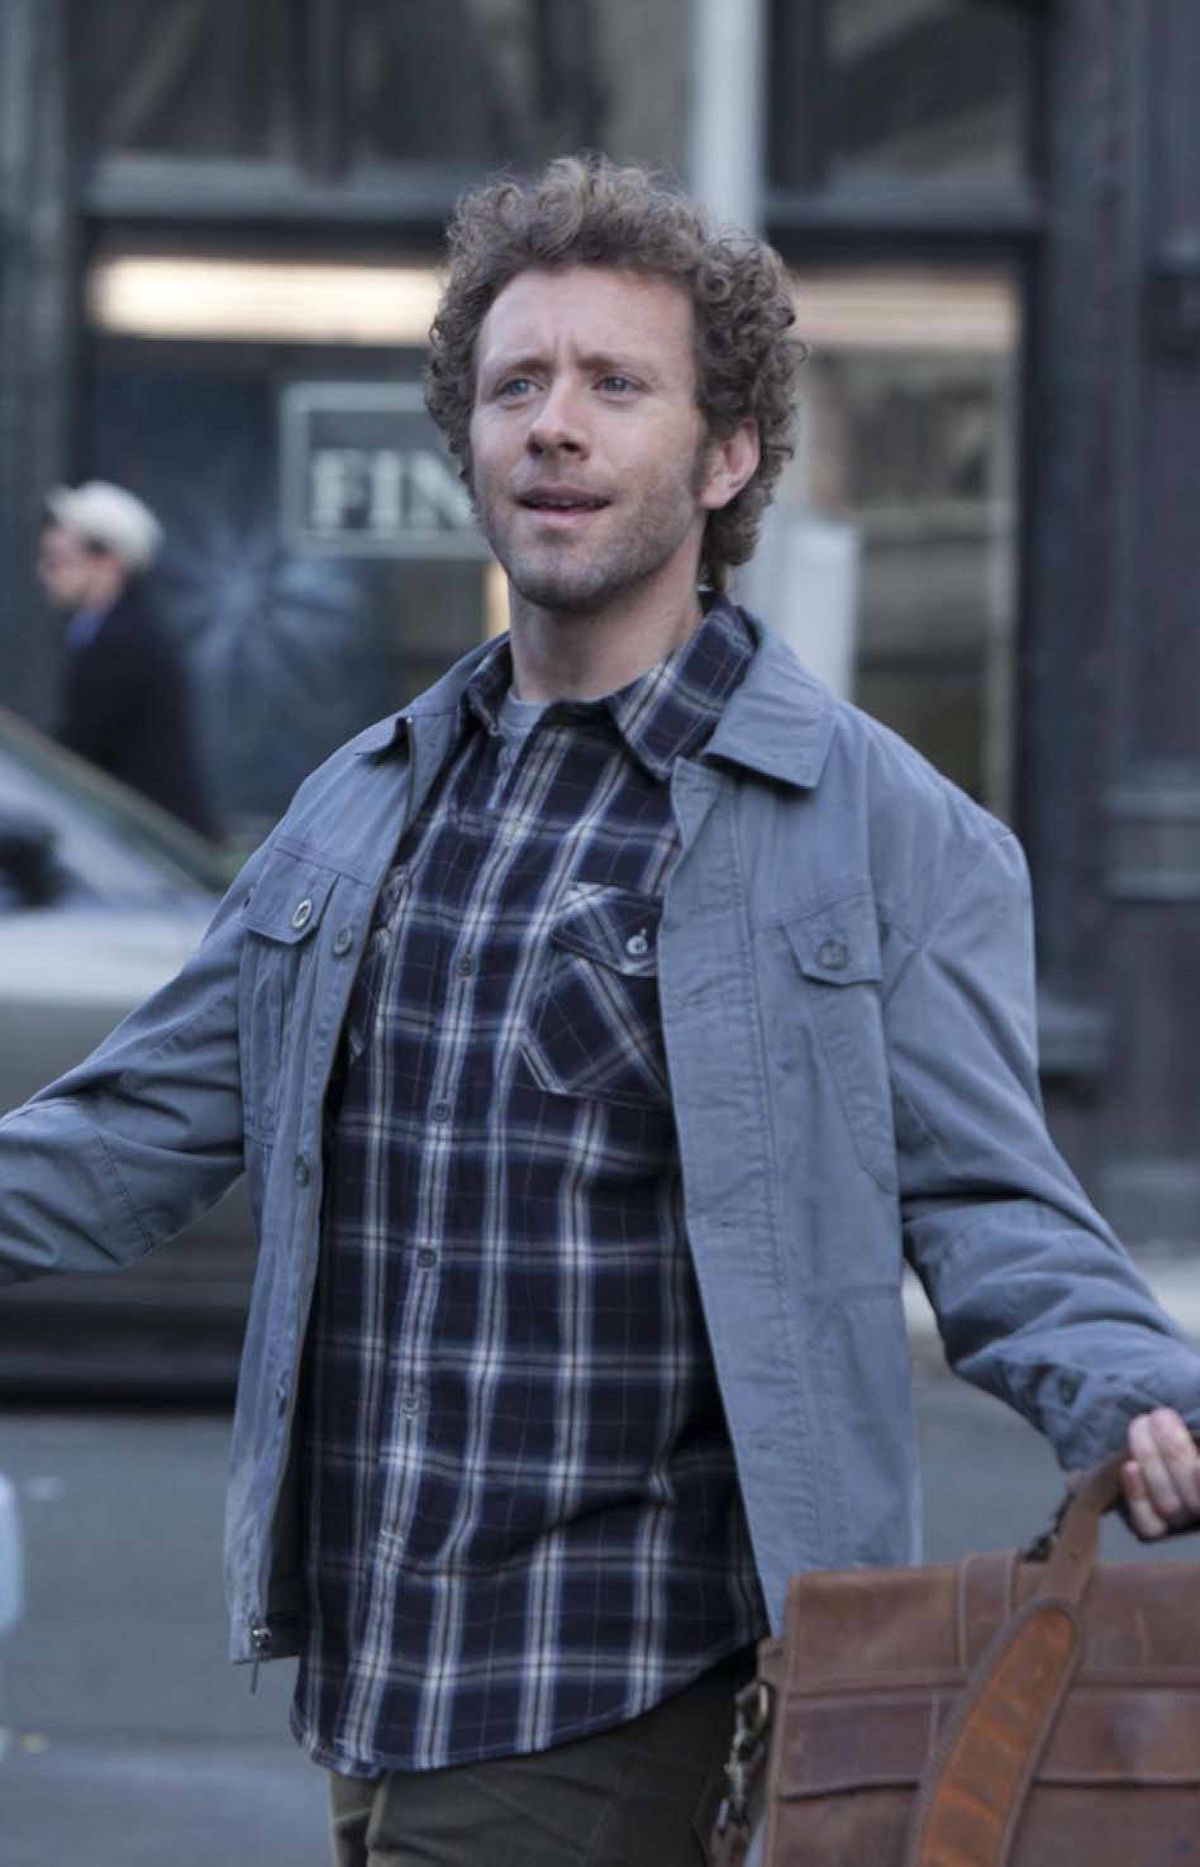 DRAMA The Finder Fox, Global, 9 p.m. ET/PT Since this midseason series is a spinoff from Bones, it was only a matter of time before some characters made the cross-over. In tonight's new episode, the regular Bones character of quirky Dr. Jack Hodgins (TJ Thyne) makes available his talents to professional finder-guy Walter (Geoff Stults), who is desperately trying to find signs of extraterrestrial activity. Hey, wasn't this a storyline on The X-Files once?